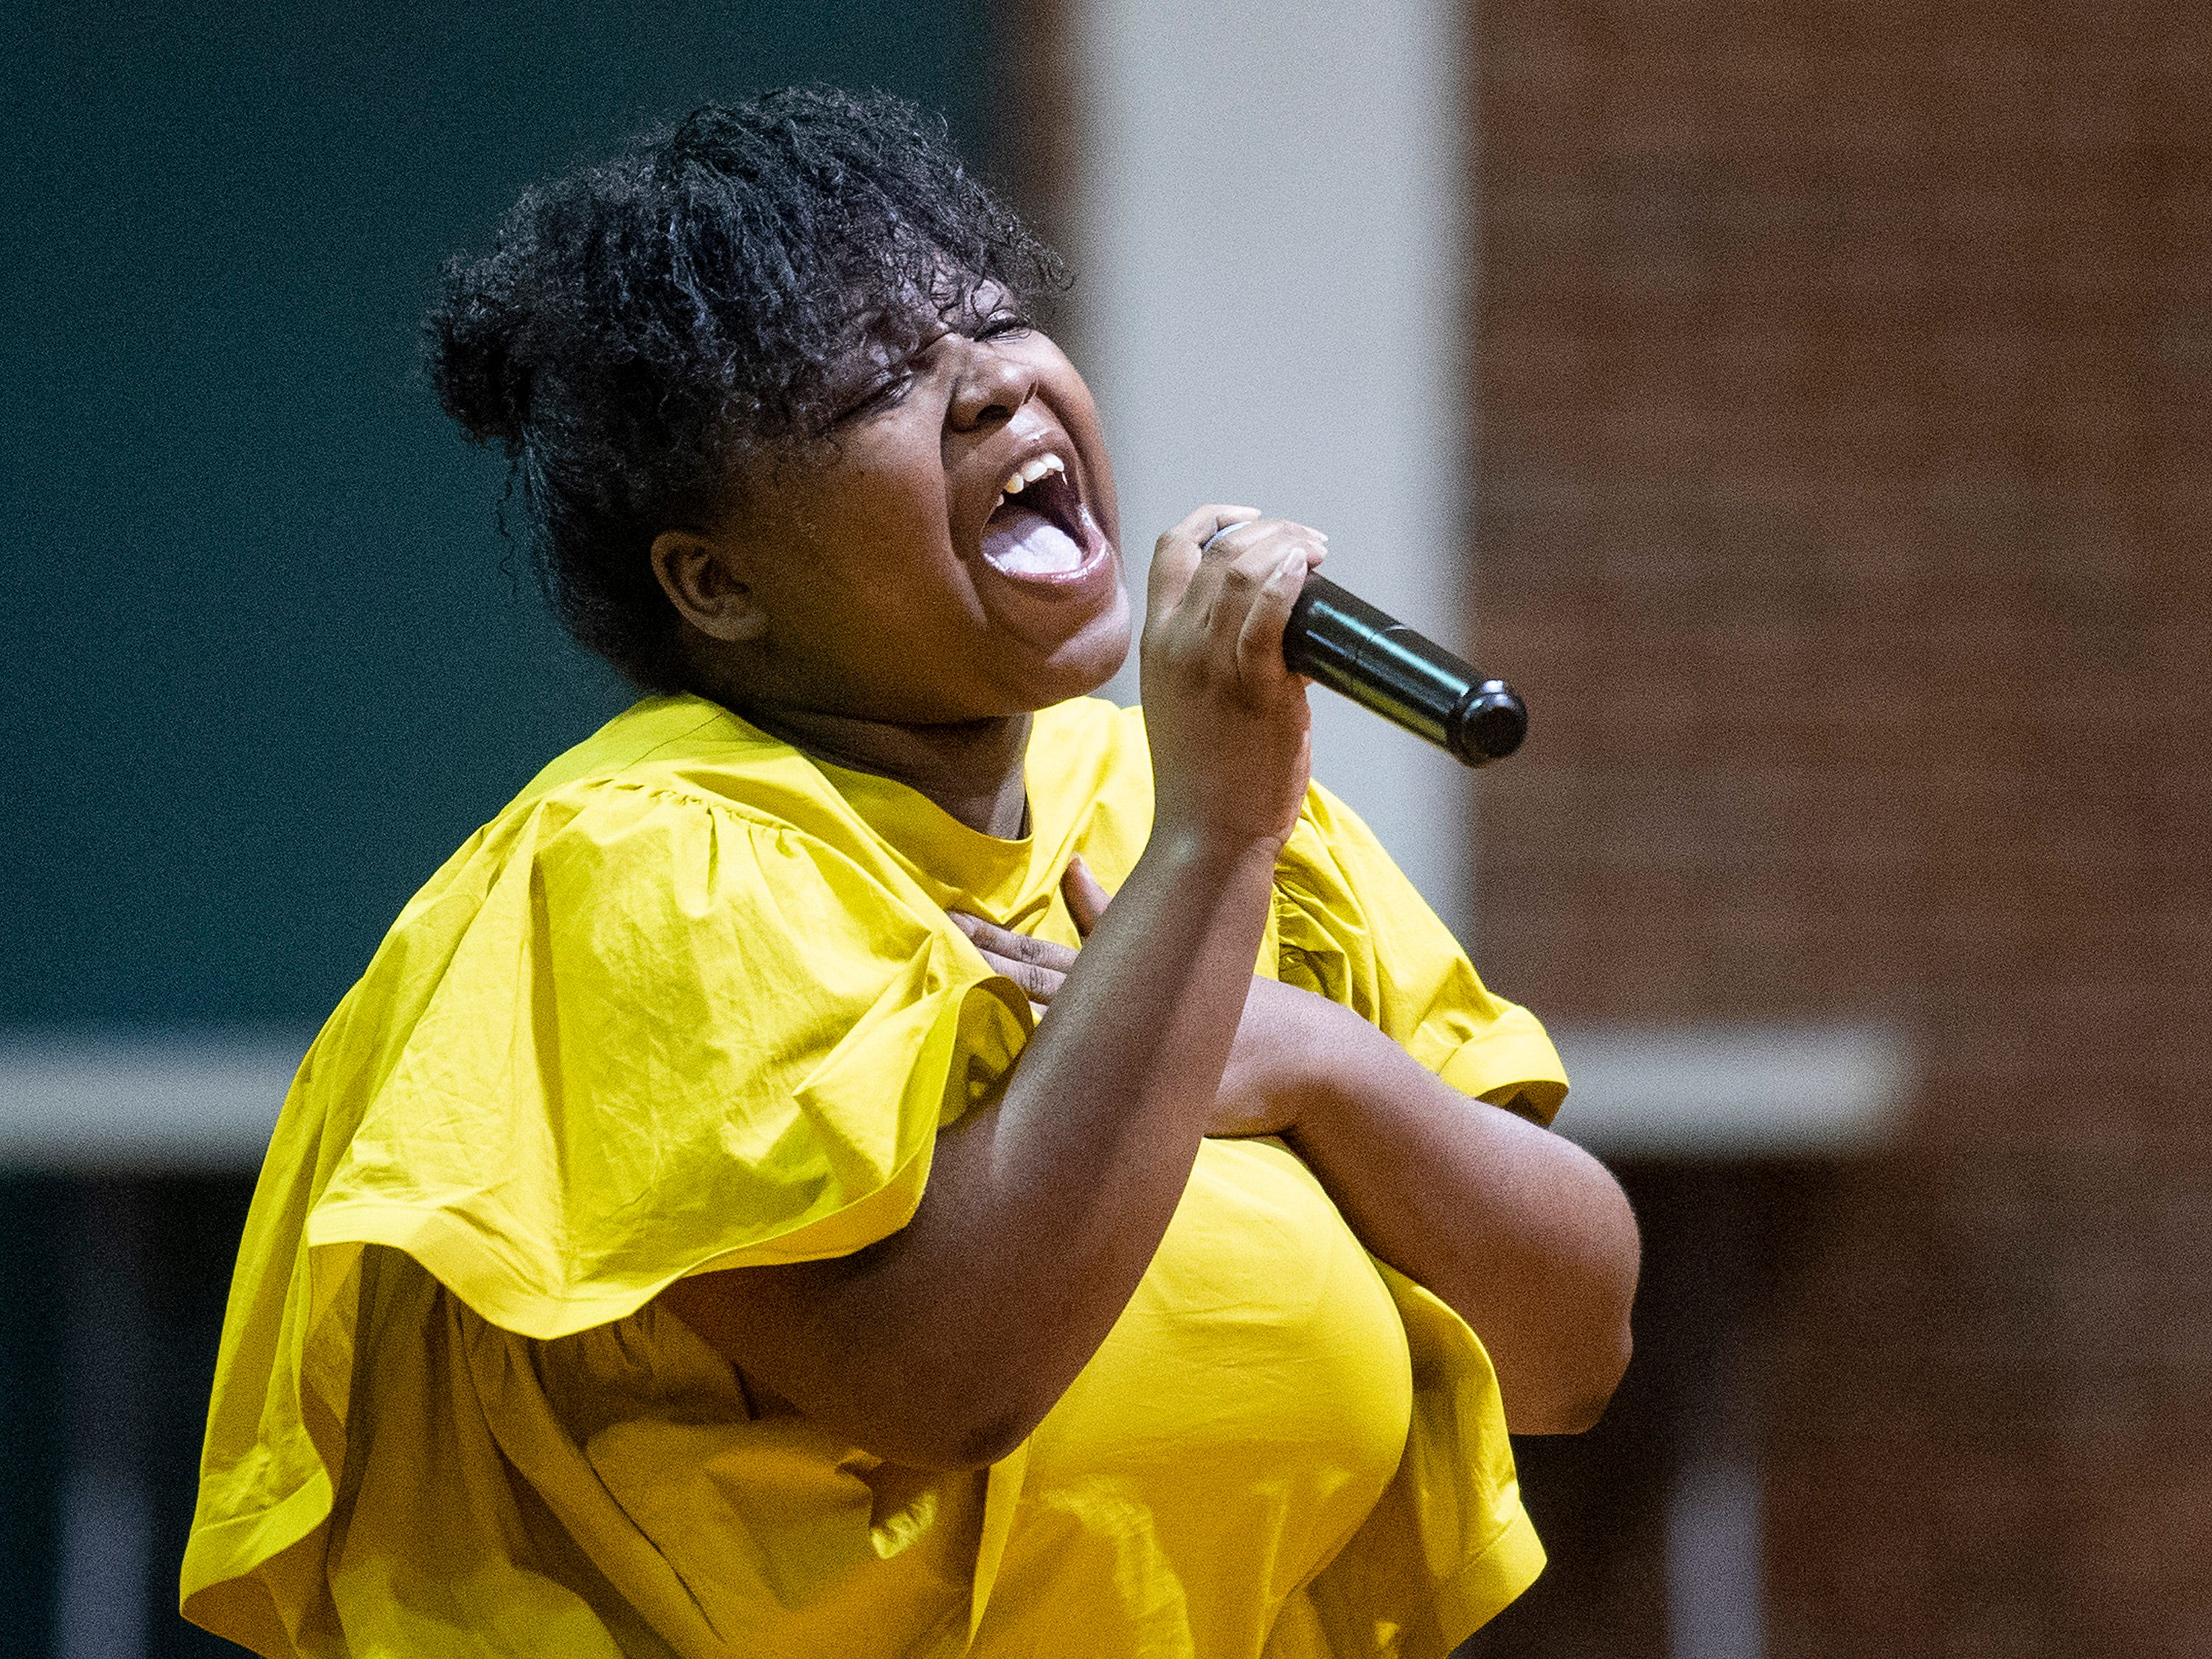 An Alabama State University student sings during the ASU President's Tour stop at Jeff Davis High School in Montgomery, Ala., on Friday April 12, 2019.